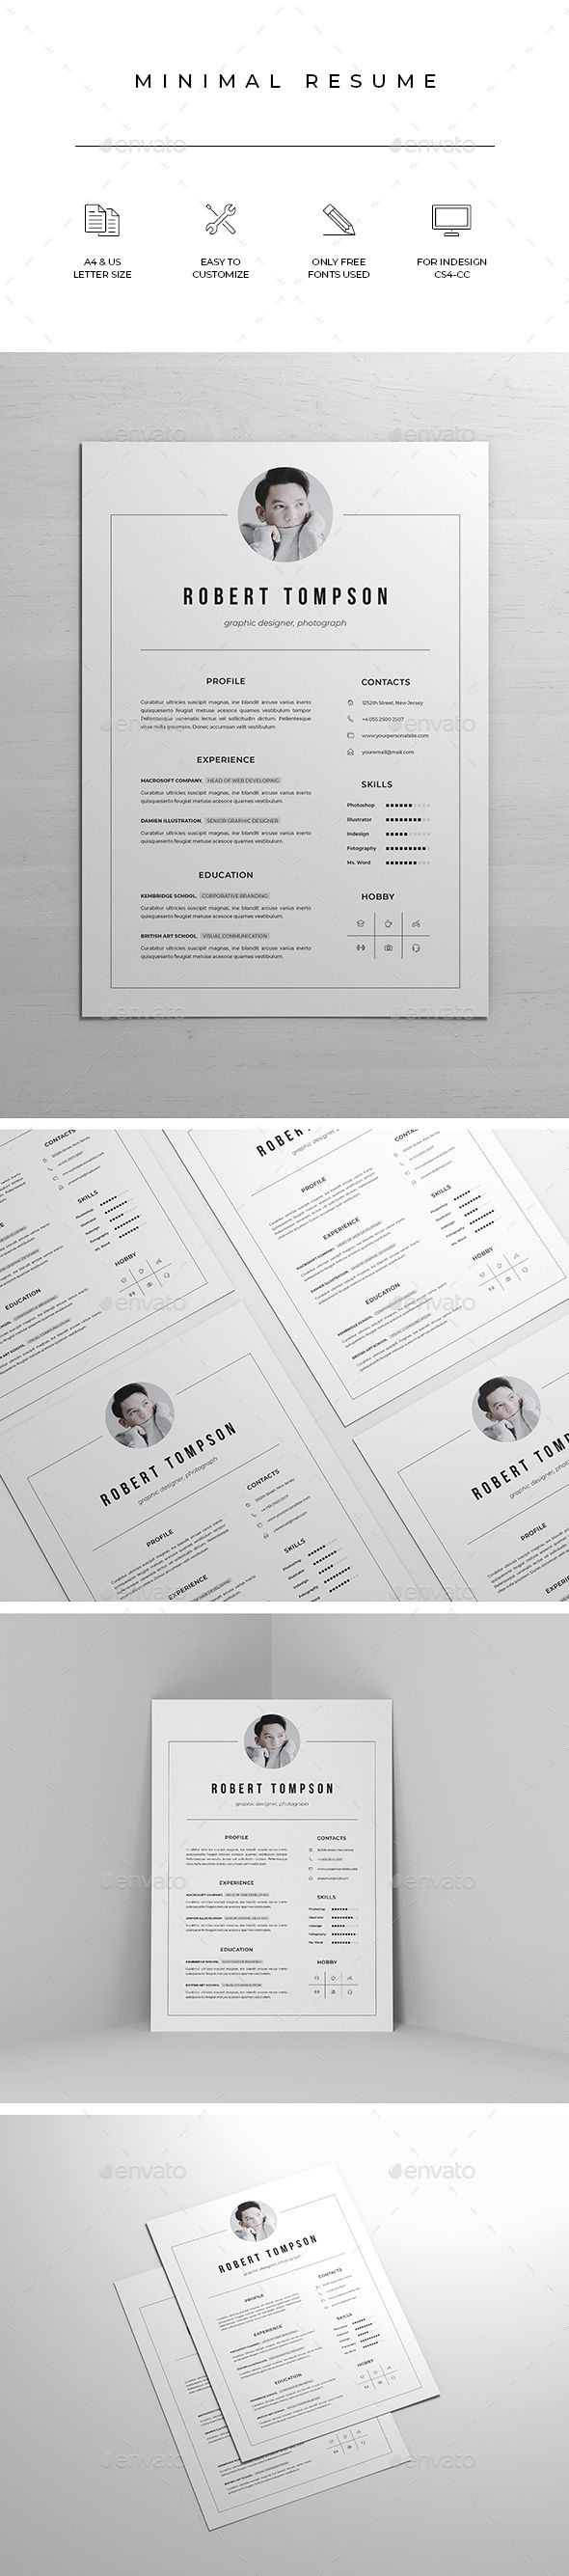 Clean ResumeCV 25 best resume images on